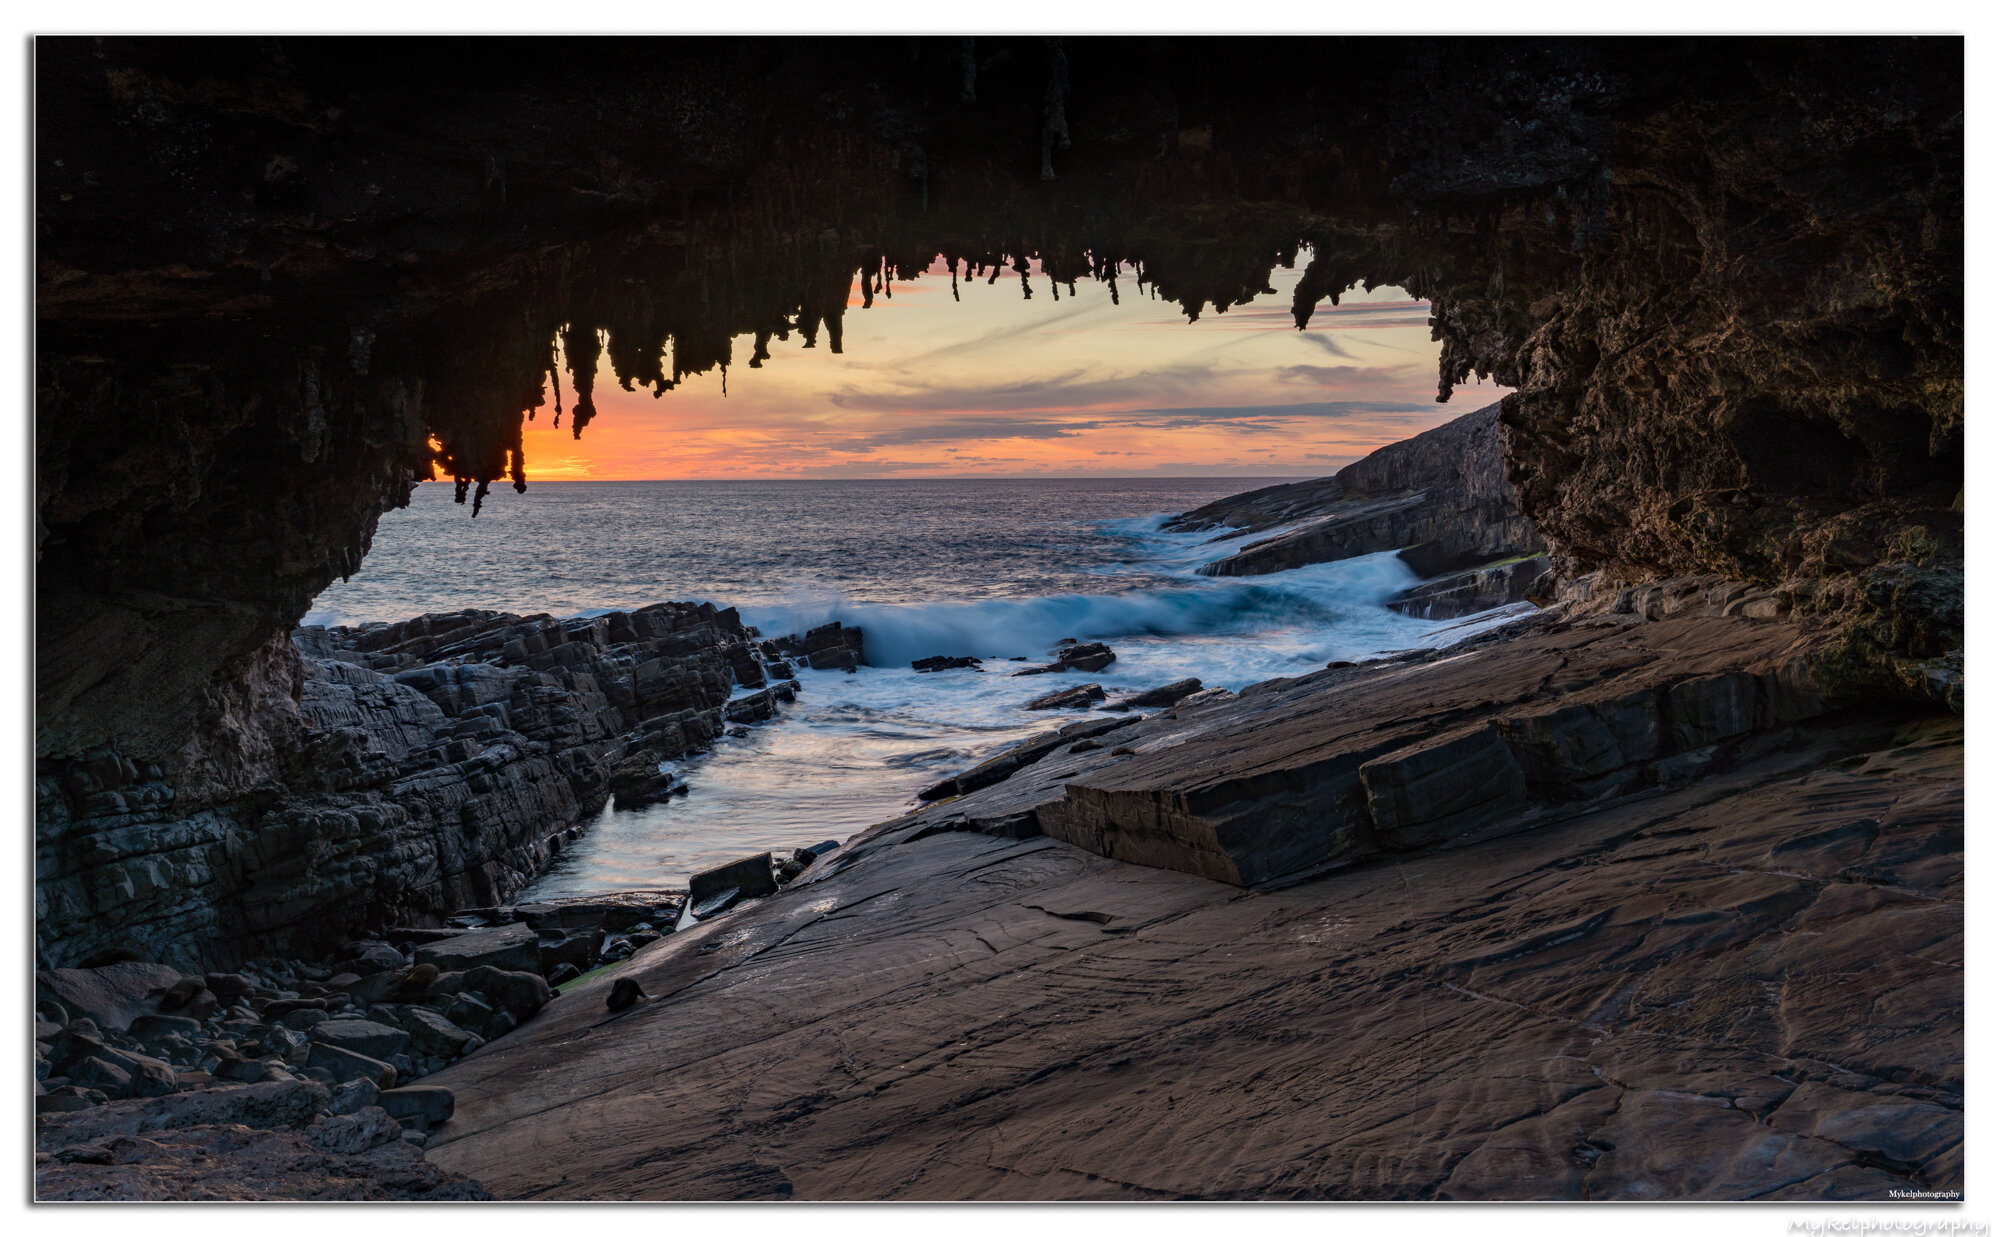 Admirals Arch is a natural rock arch created by amazing forces of nature. It's in Flinders Chase National Park on Kangaroo Island. You can take an easy walk on a boardwalk around the cliff face. This leads you to a viewing platform overlooking the arch. The arch is sculpted by weathering and erosion from the sea over thousands of years.